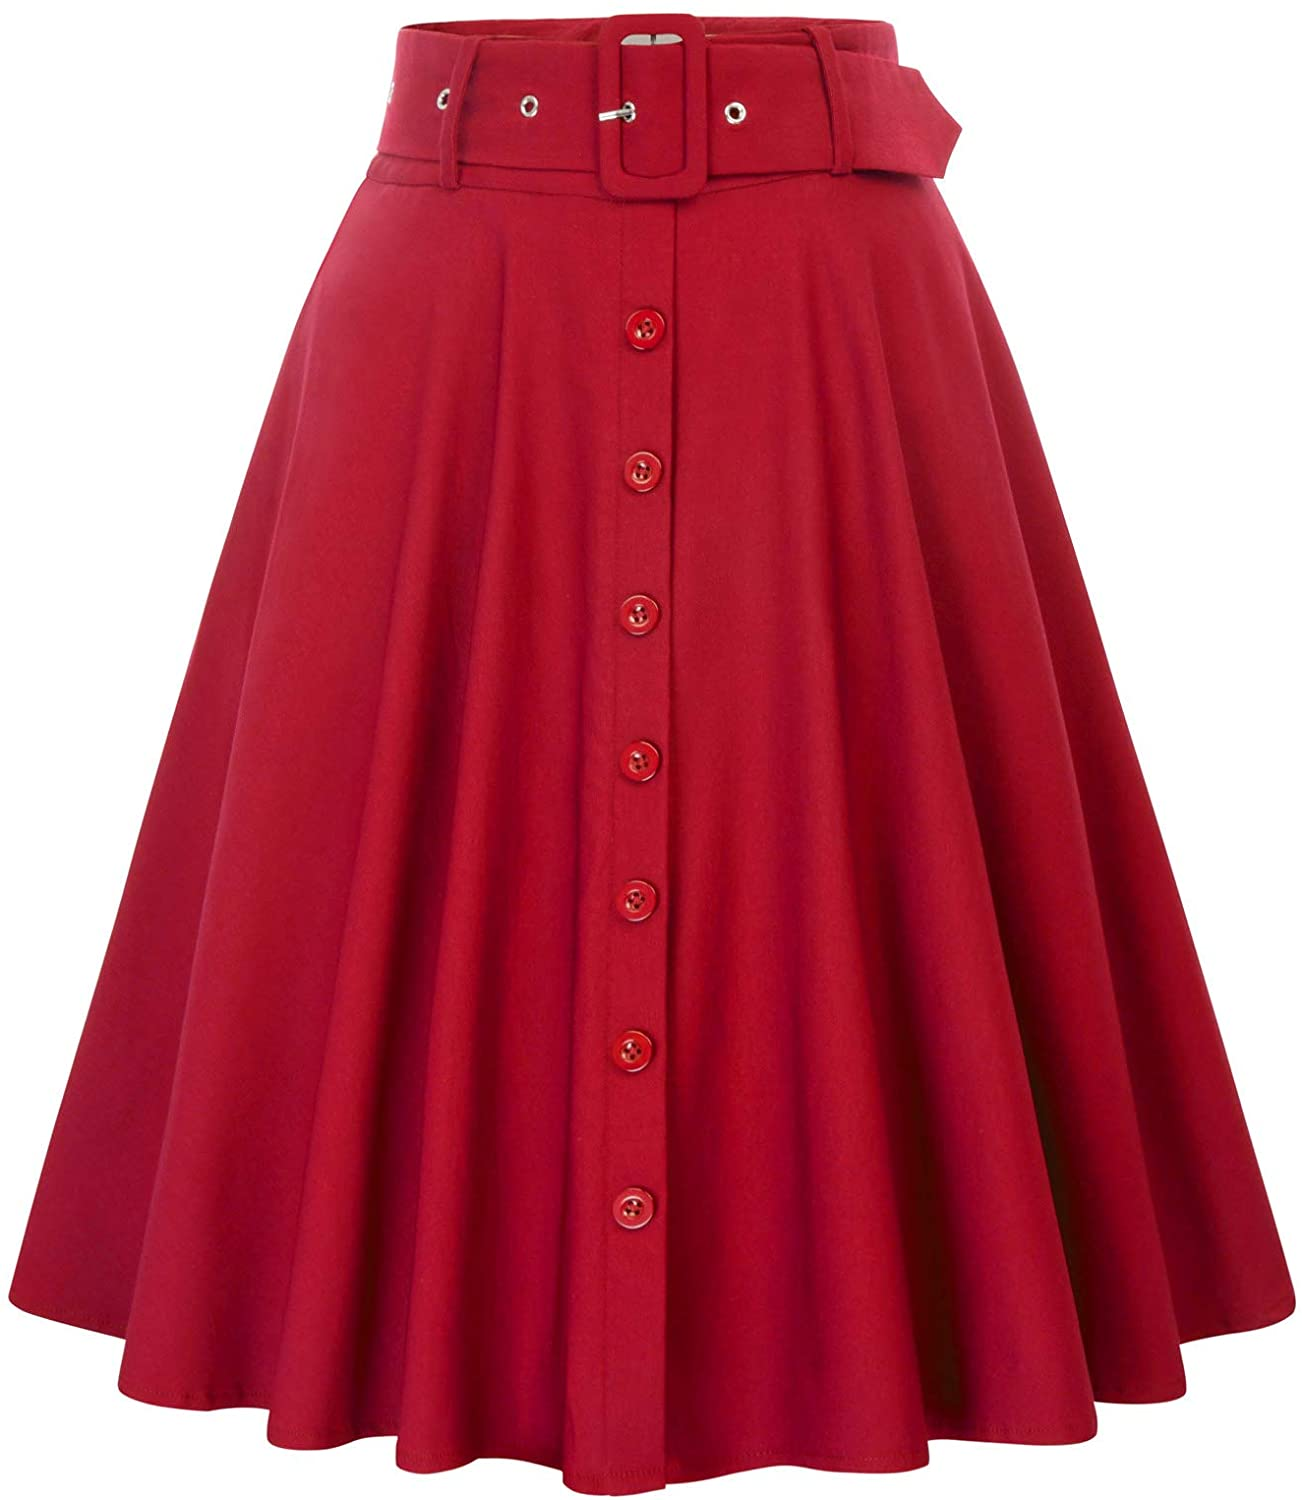 Vintage Skirts | Retro, Pencil, Swing, Boho Belle Poque Womens Stretch High Waist A-Line Flared Midi Skirts with Pockets & Belts $27.99 AT vintagedancer.com